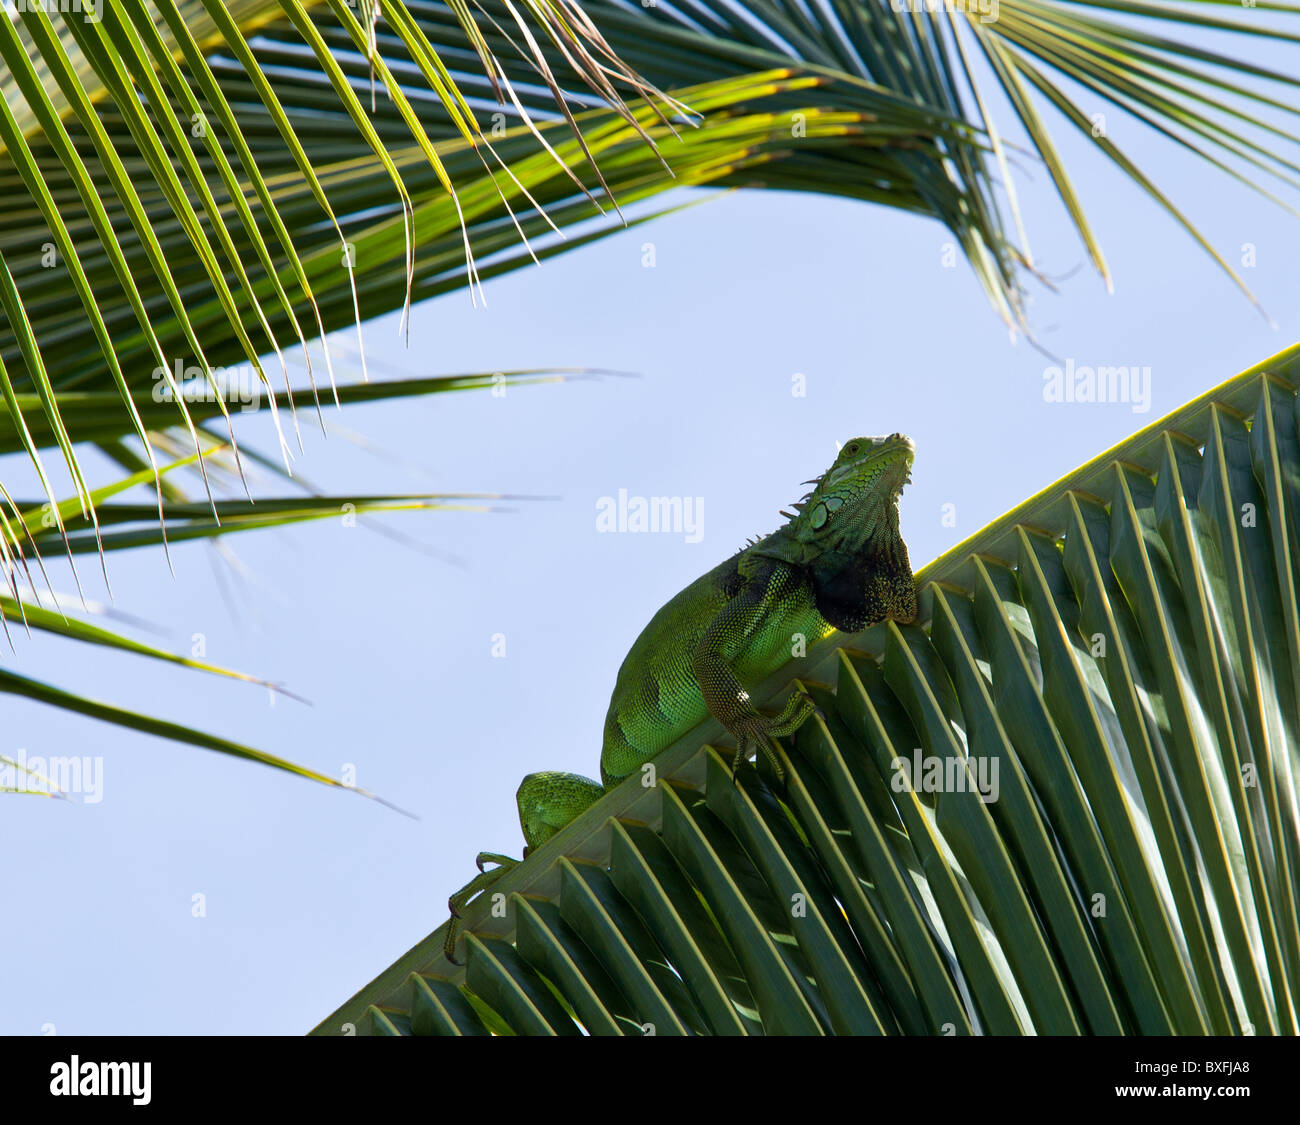 Green iguana climing in the fronds of a palm tree - Stock Image